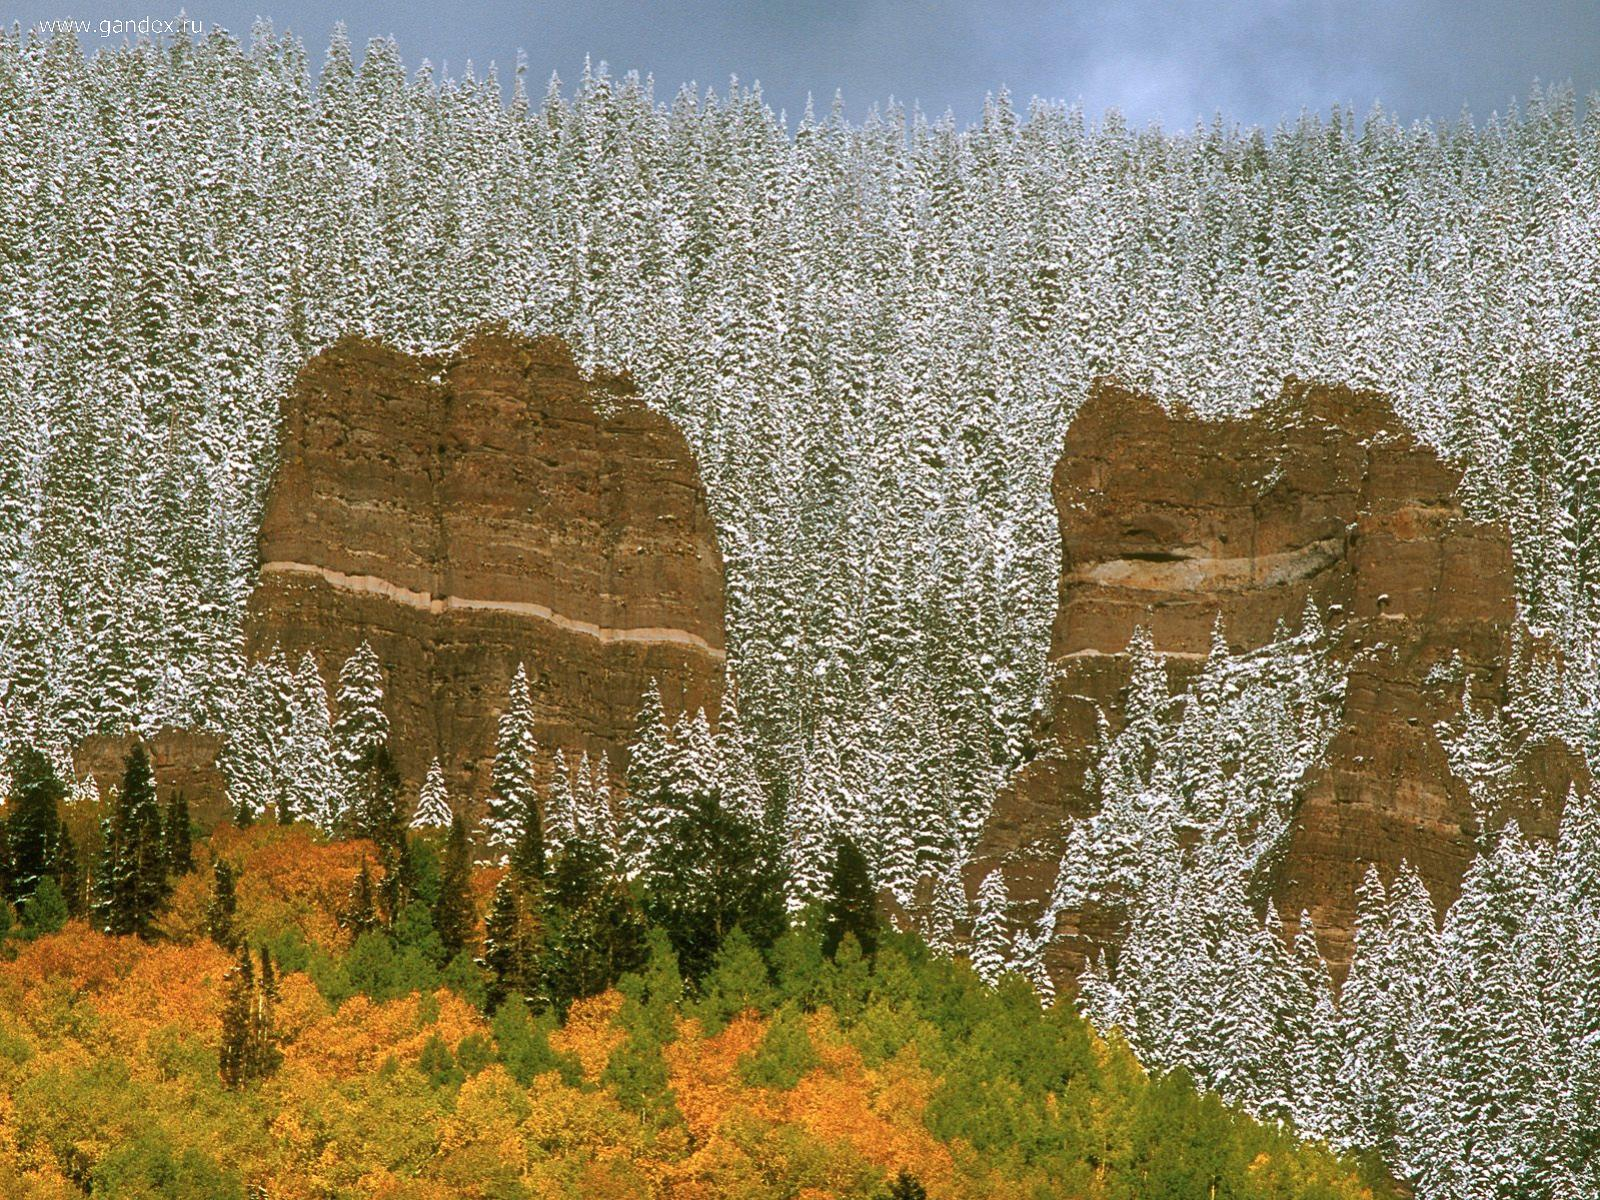 Trees covered with snow in Colorado, natural wallpaper.